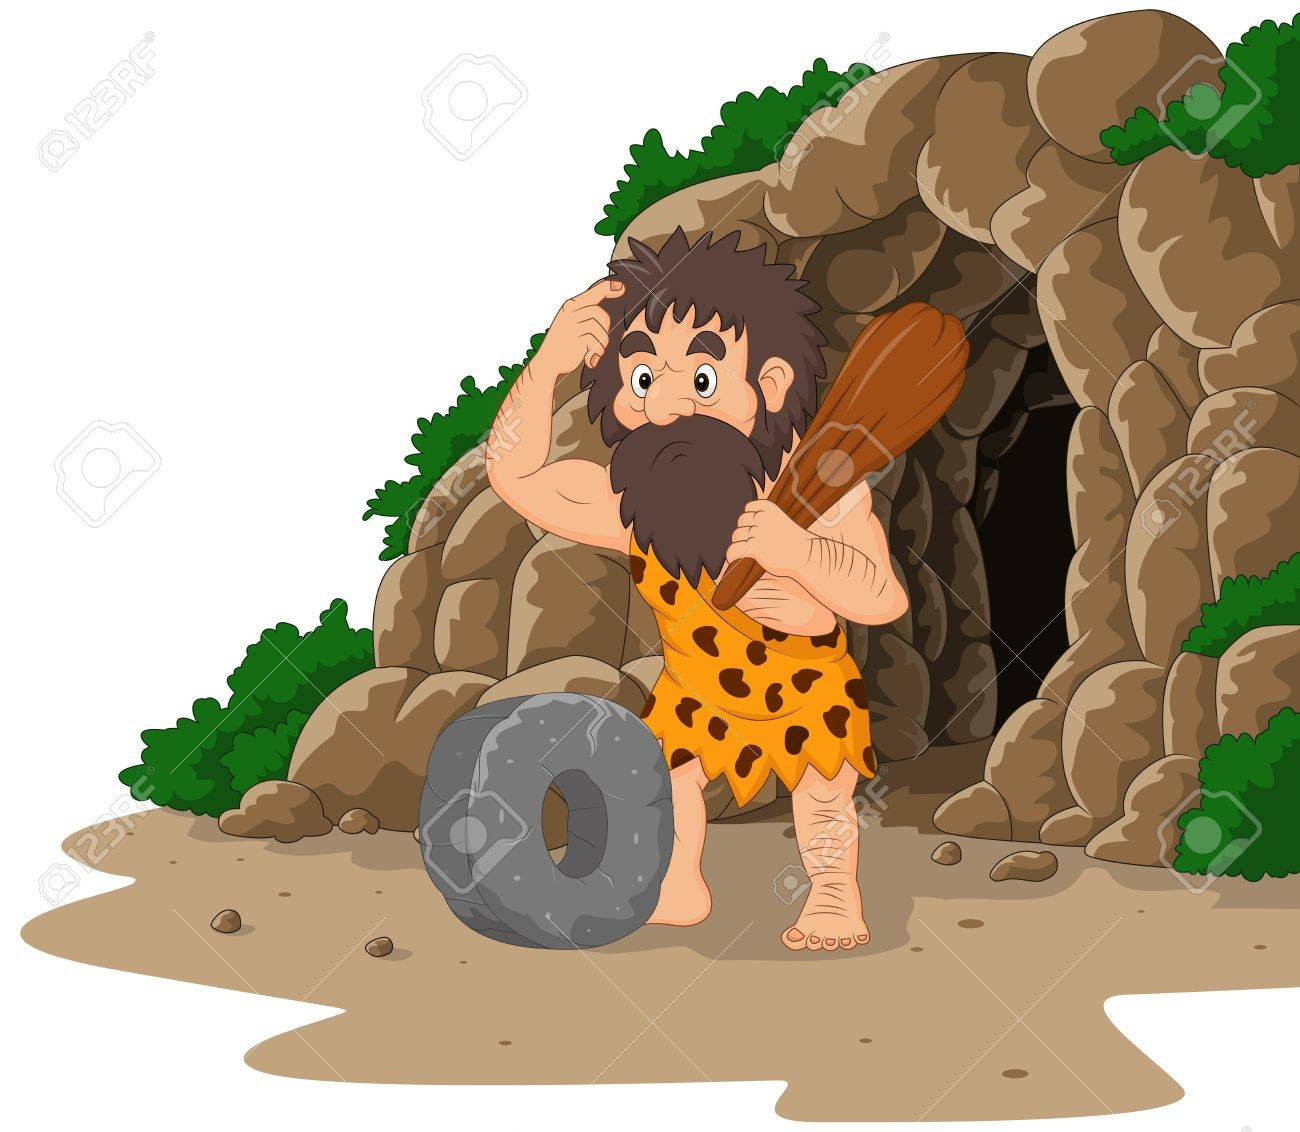 Vector illustration of Cartoon caveman inventing stone wheel with cave background - 85308258